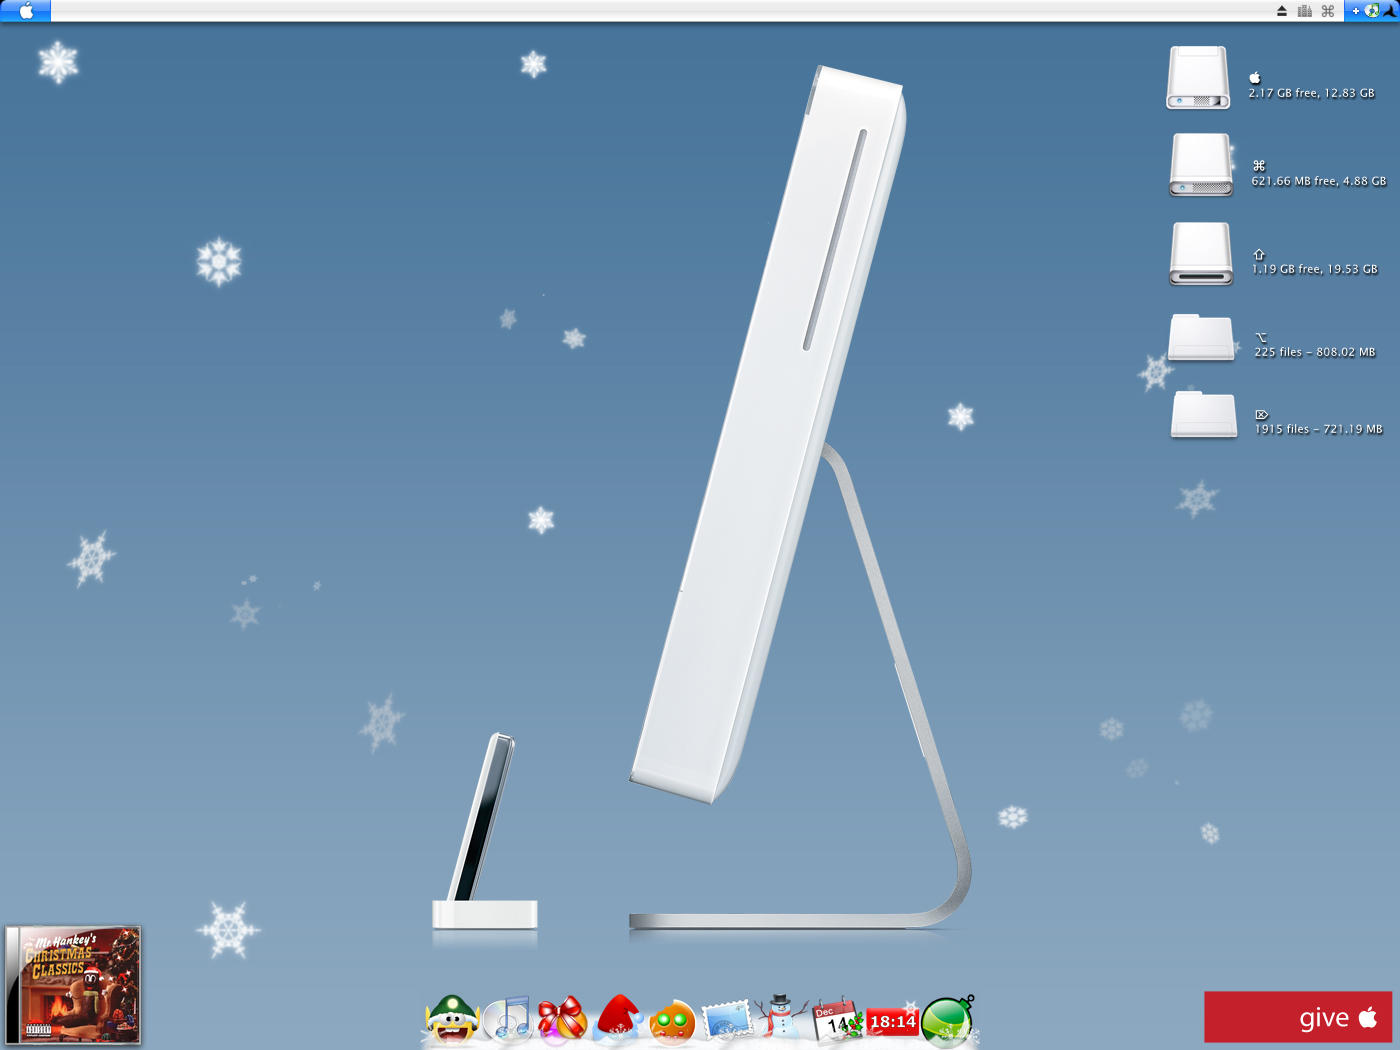 iMac Xmas Wish Desktop by Atreide